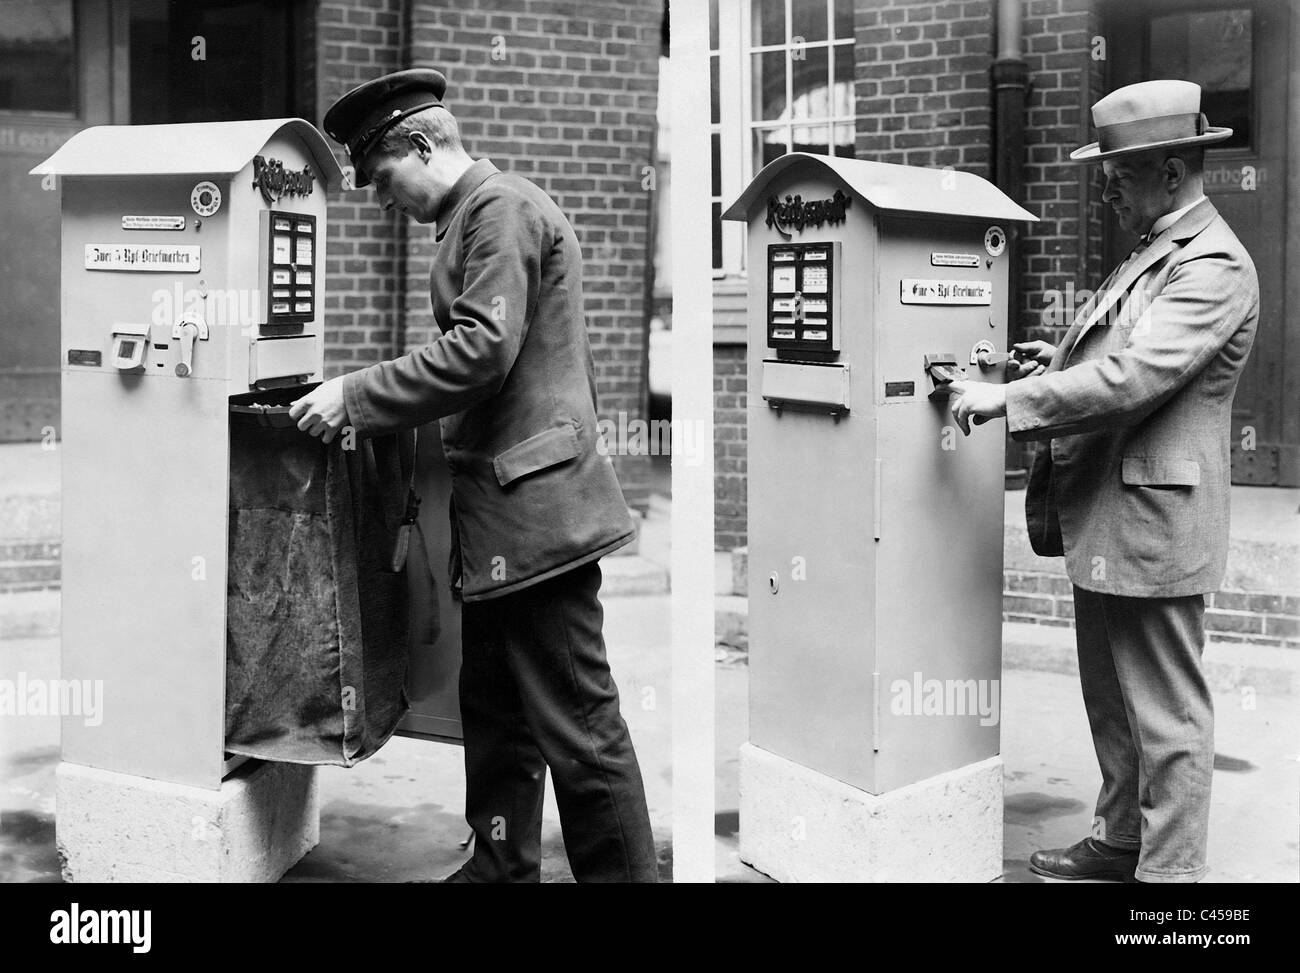 Mailboxes with stamp machine, 1928 Stock Photo